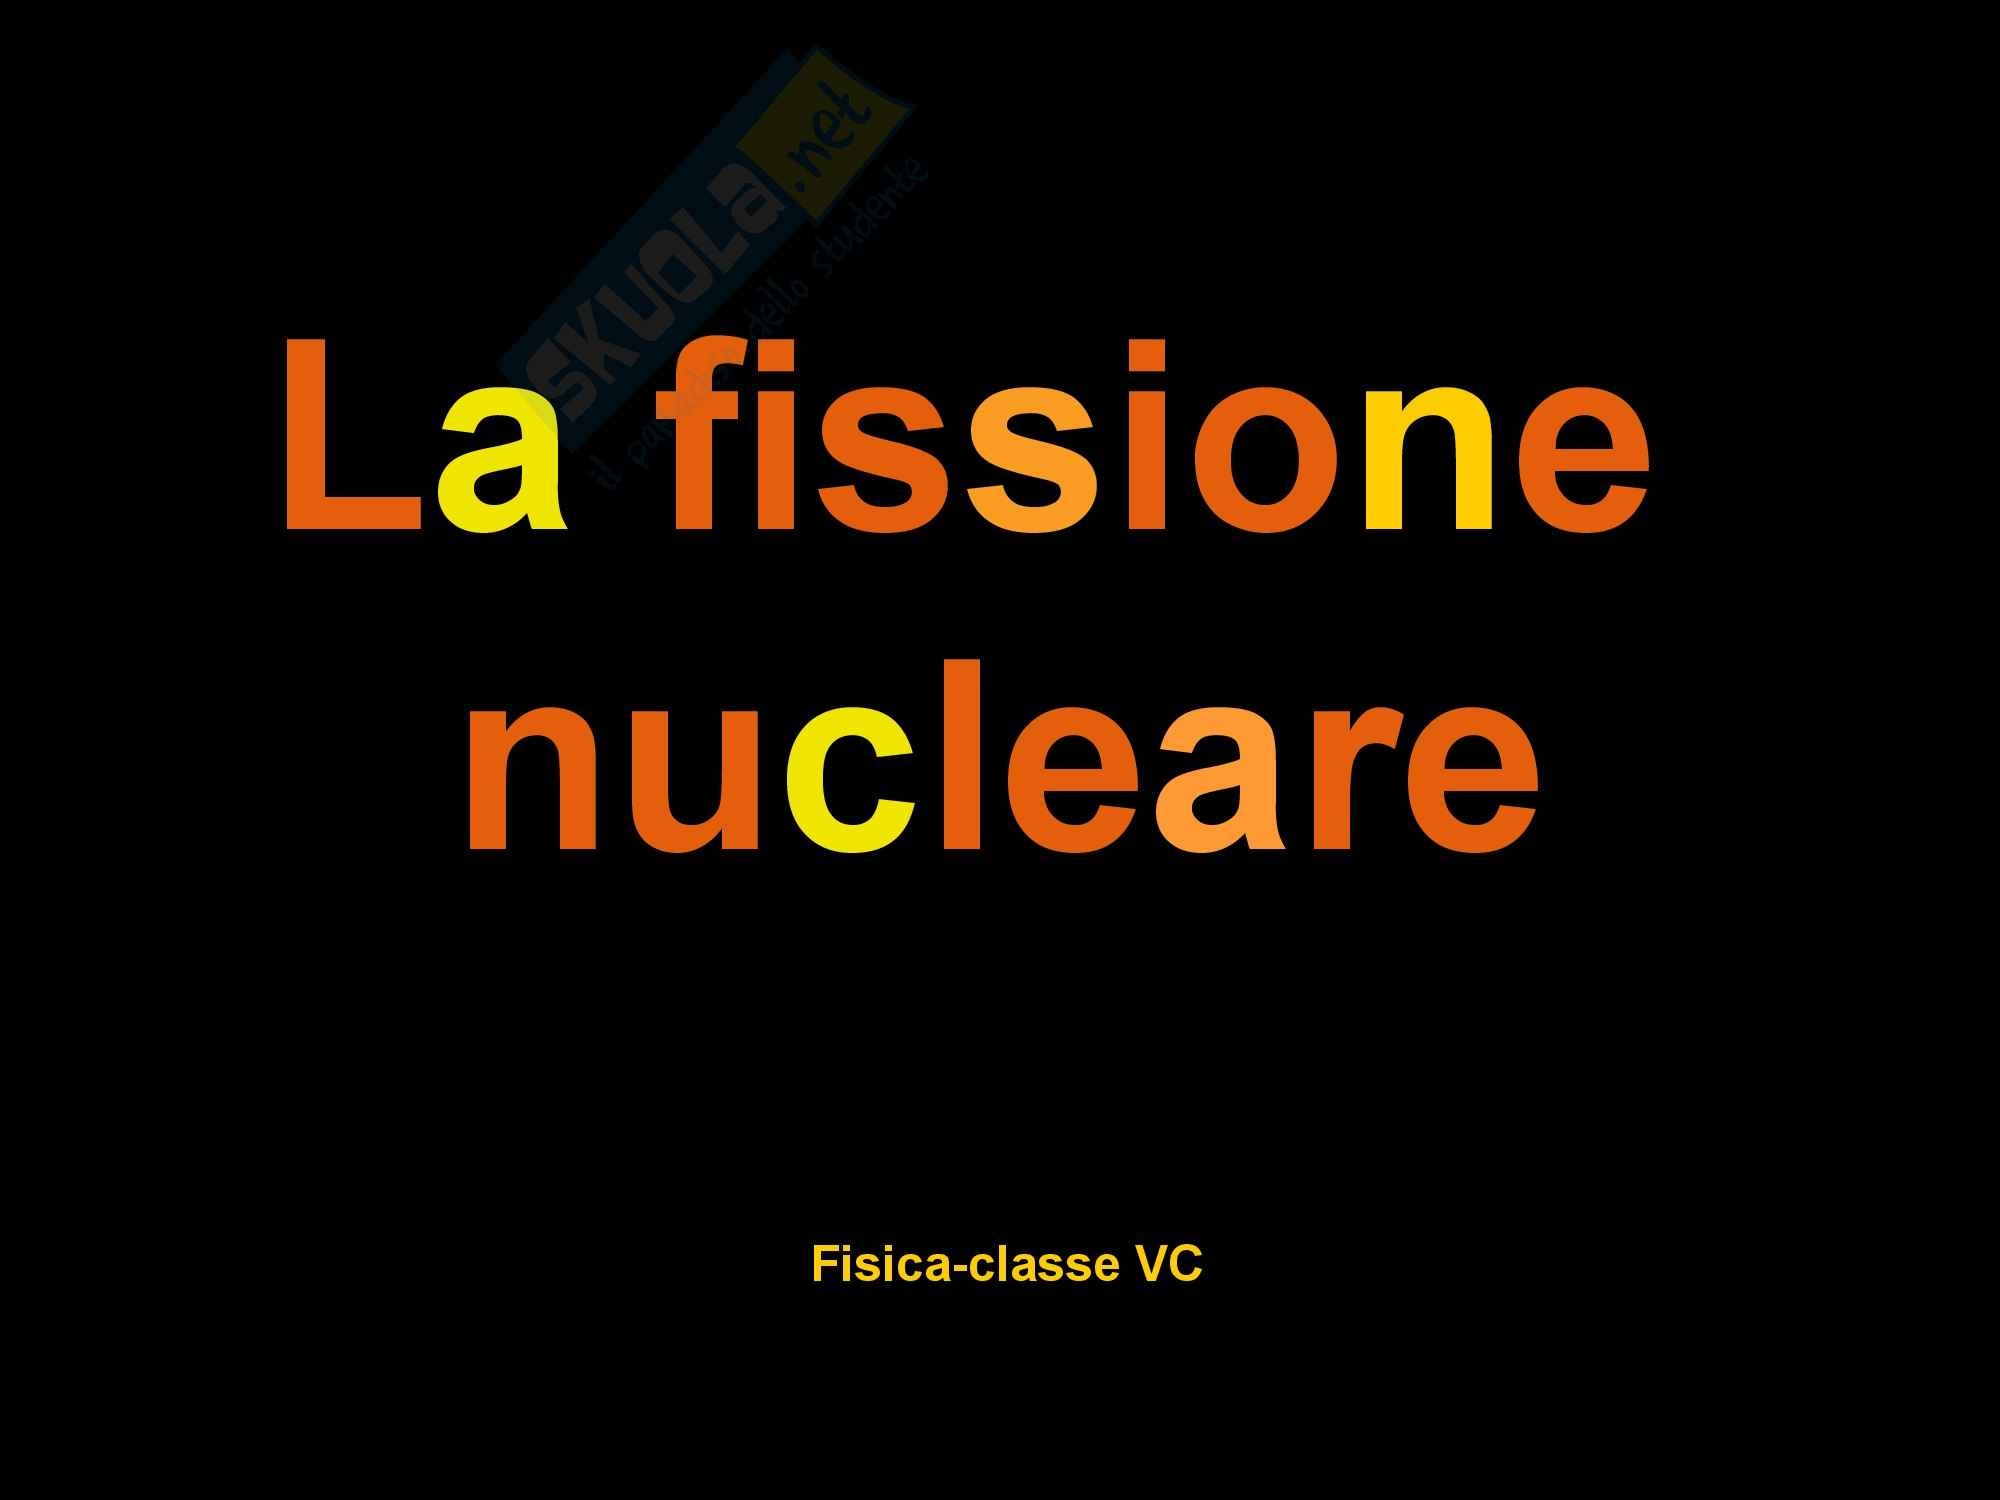 Fissione nucleare - Ricerca Pag. 1